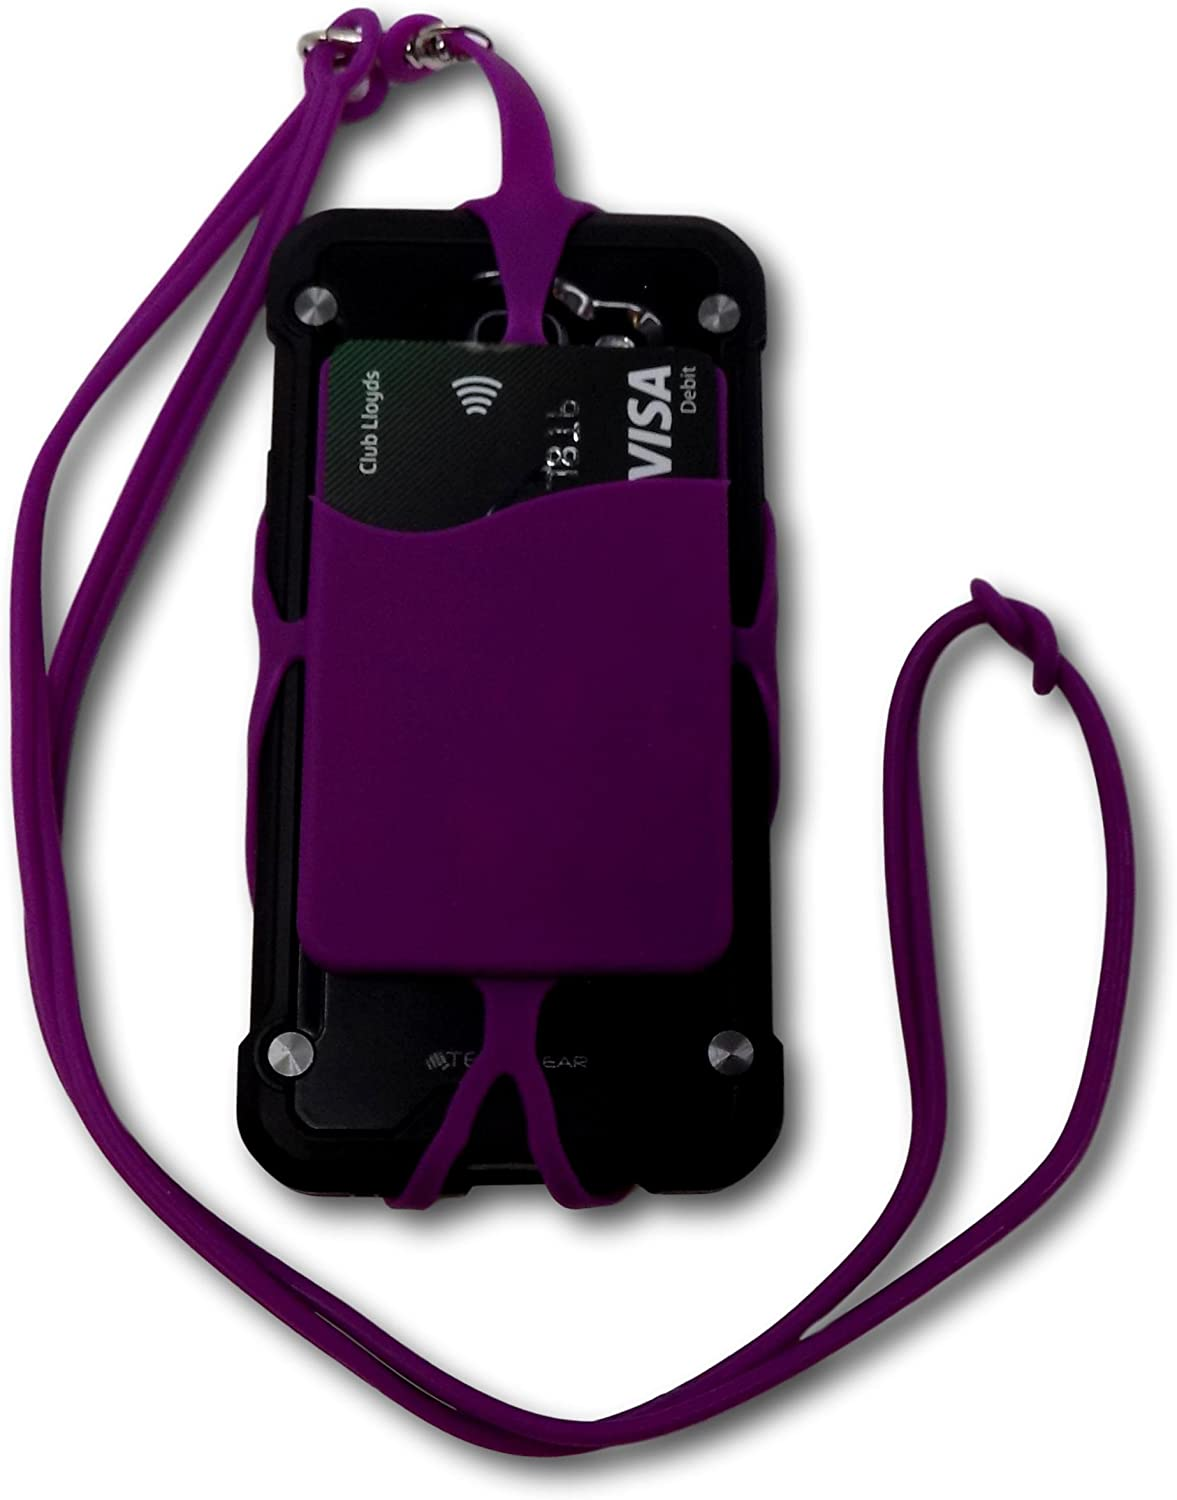 Yellow Minder Flexi-Grip Silicone Mobile Phone and Credit Card Holder Safety Adjustable Lanyard